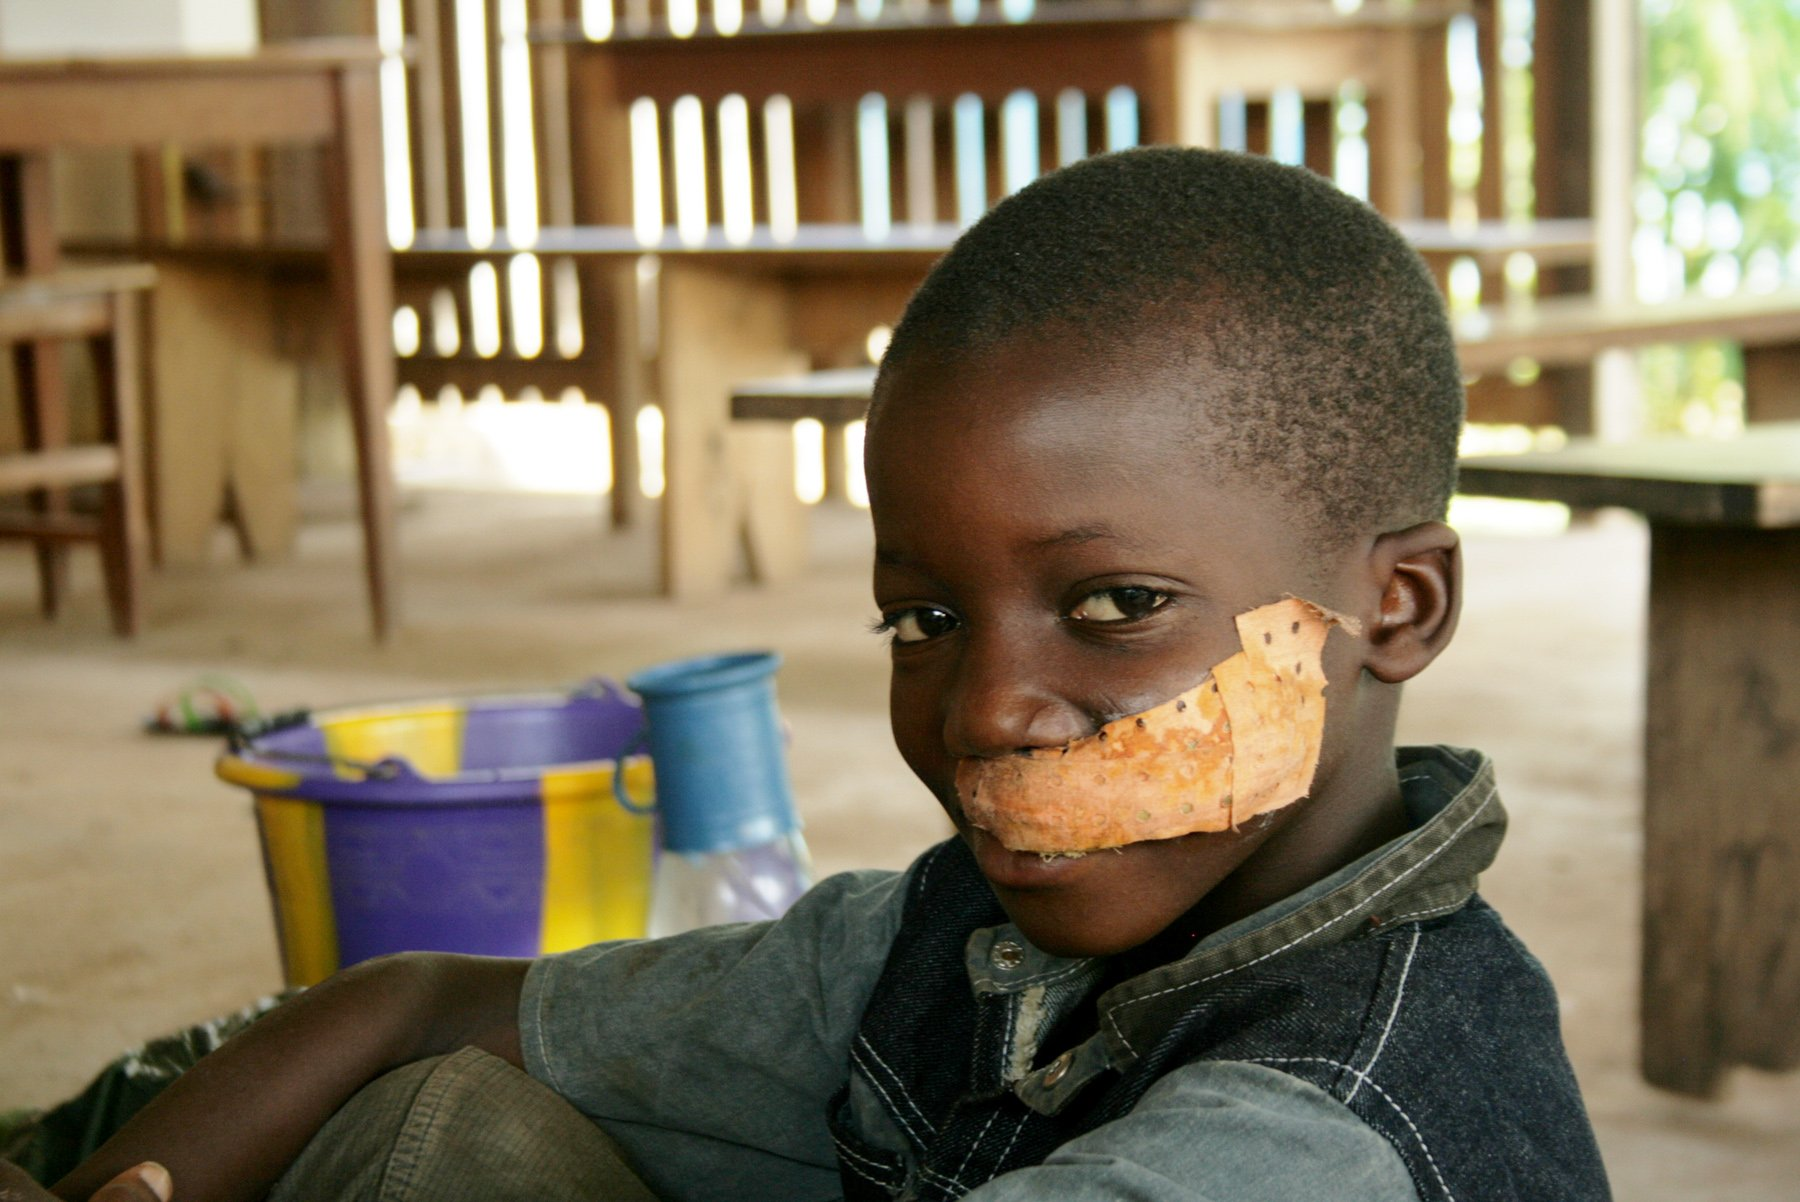 This boy was shot in the face when armed men attacked a site where displaced families had sought refuge, western Côte d'Ivoire. April 2011